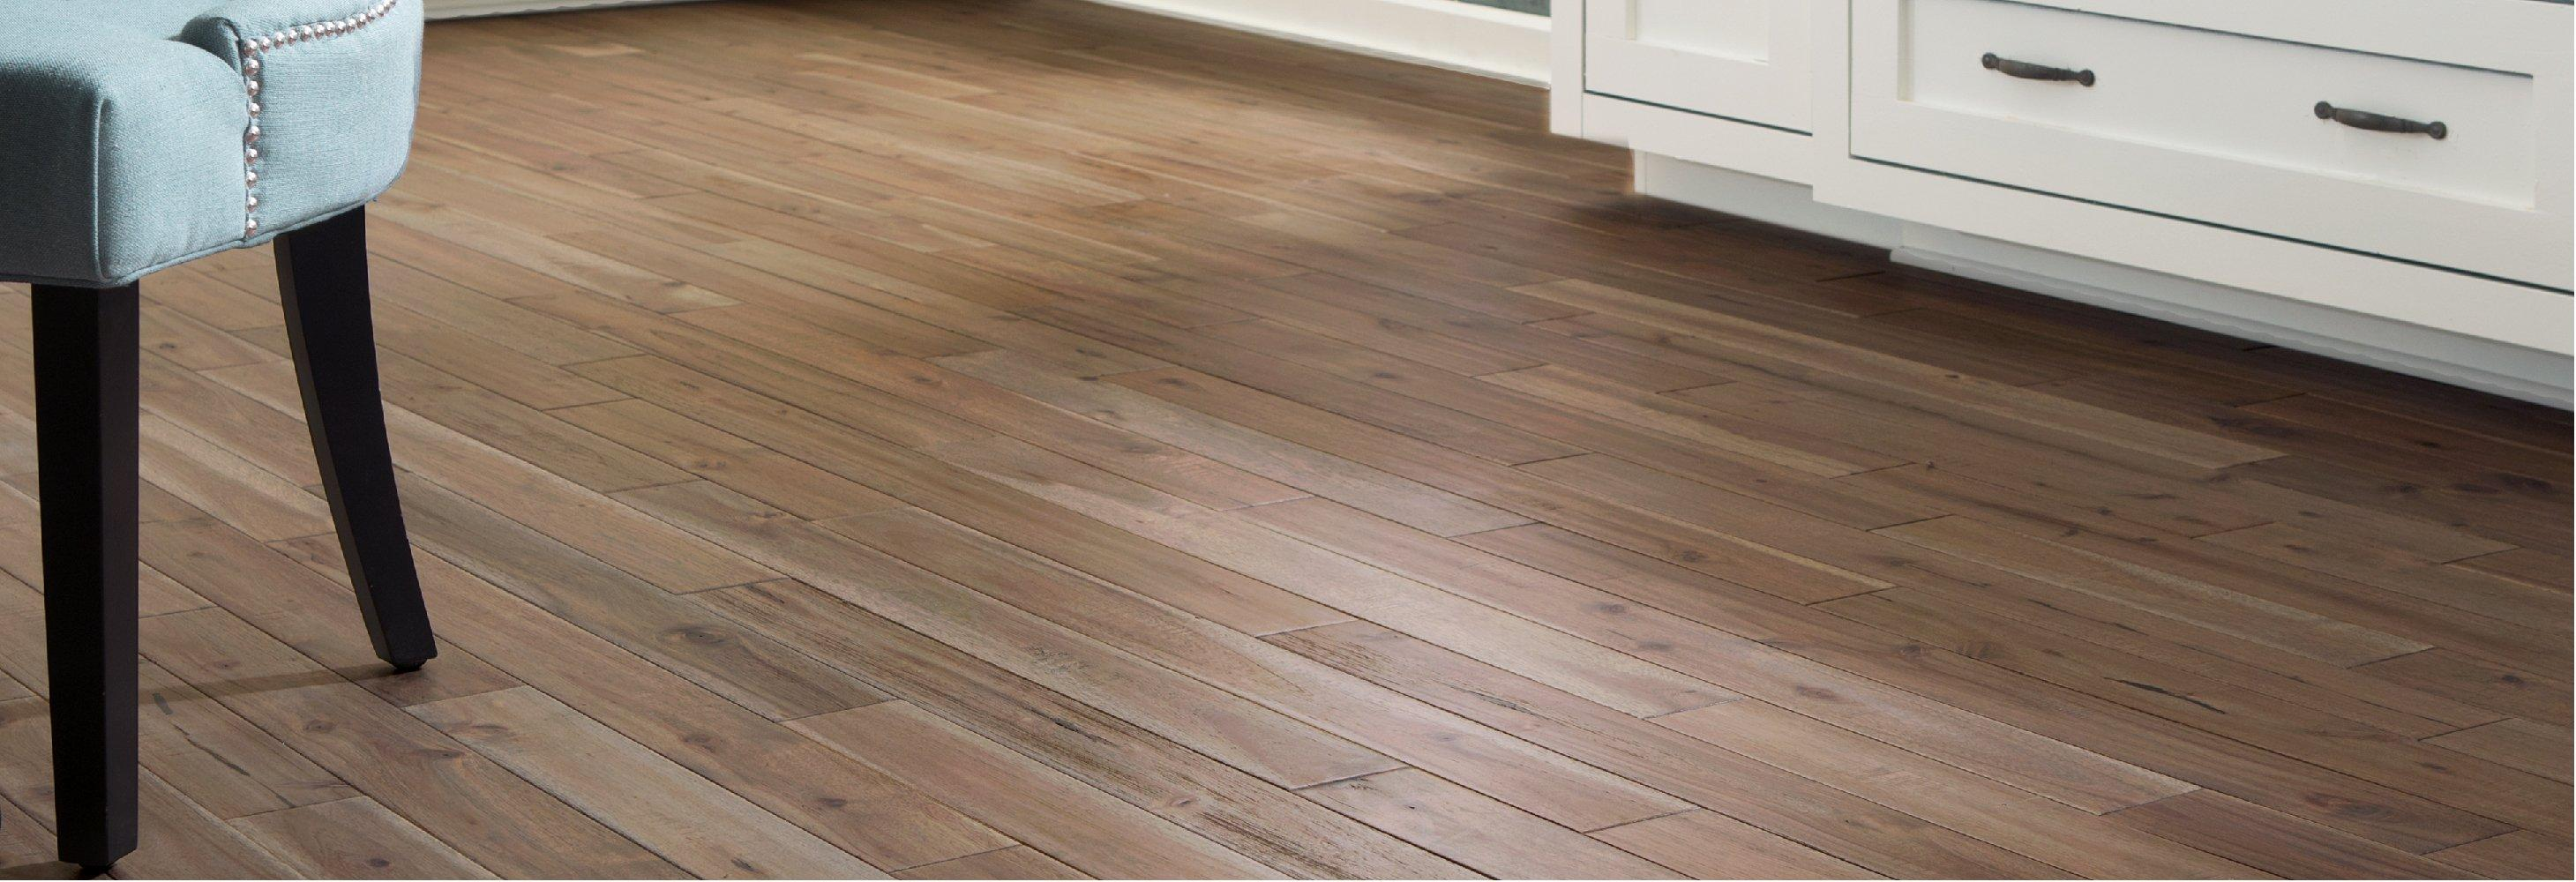 solid wood flooring solid hardwood flooring IJYATPQ